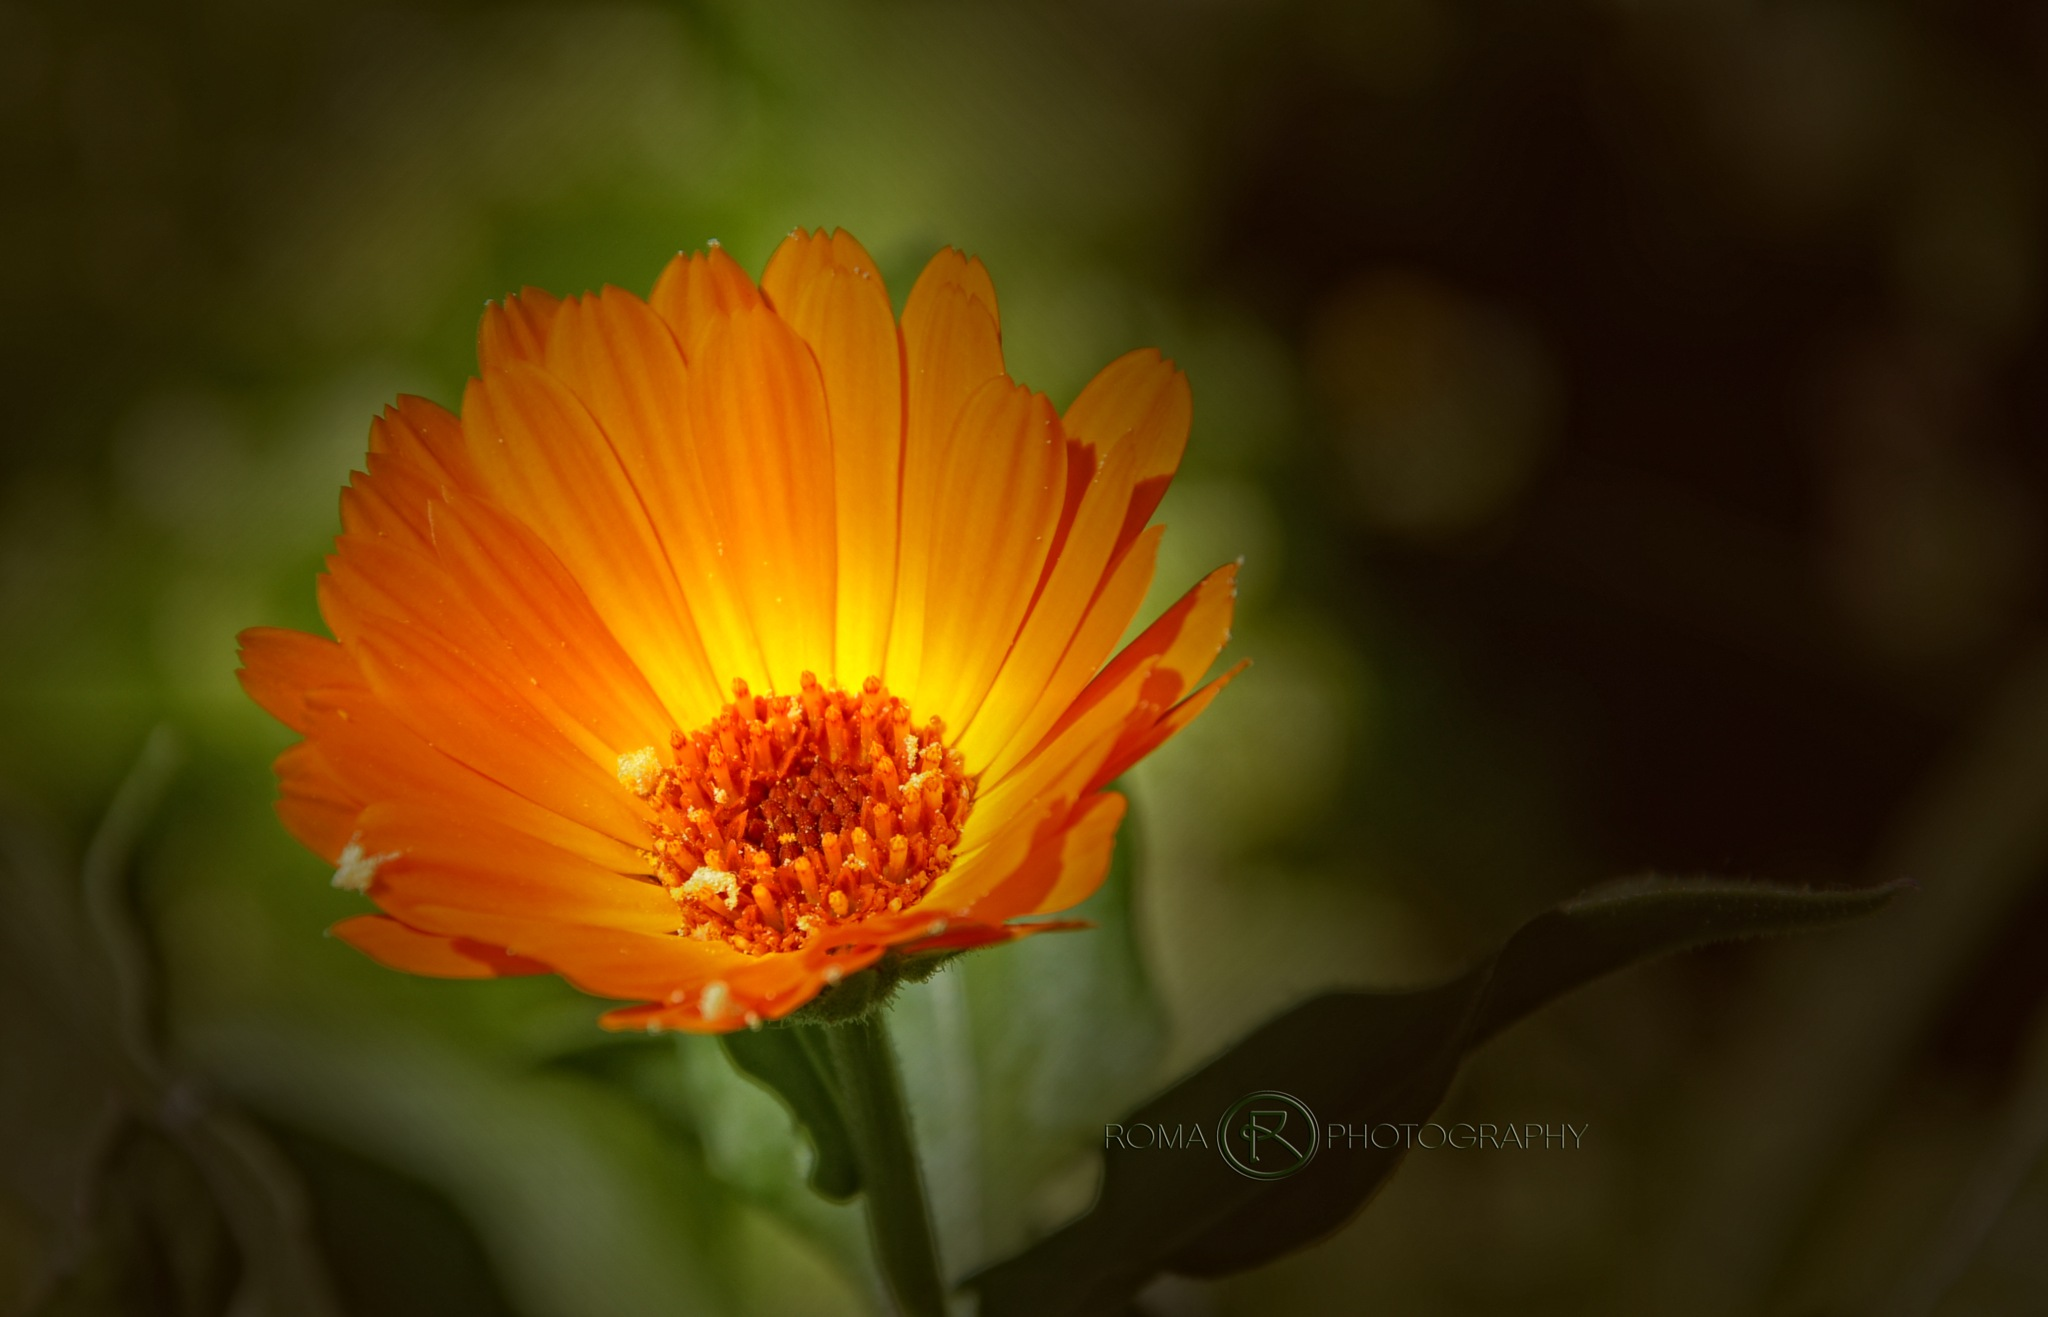 small by Roma Photography